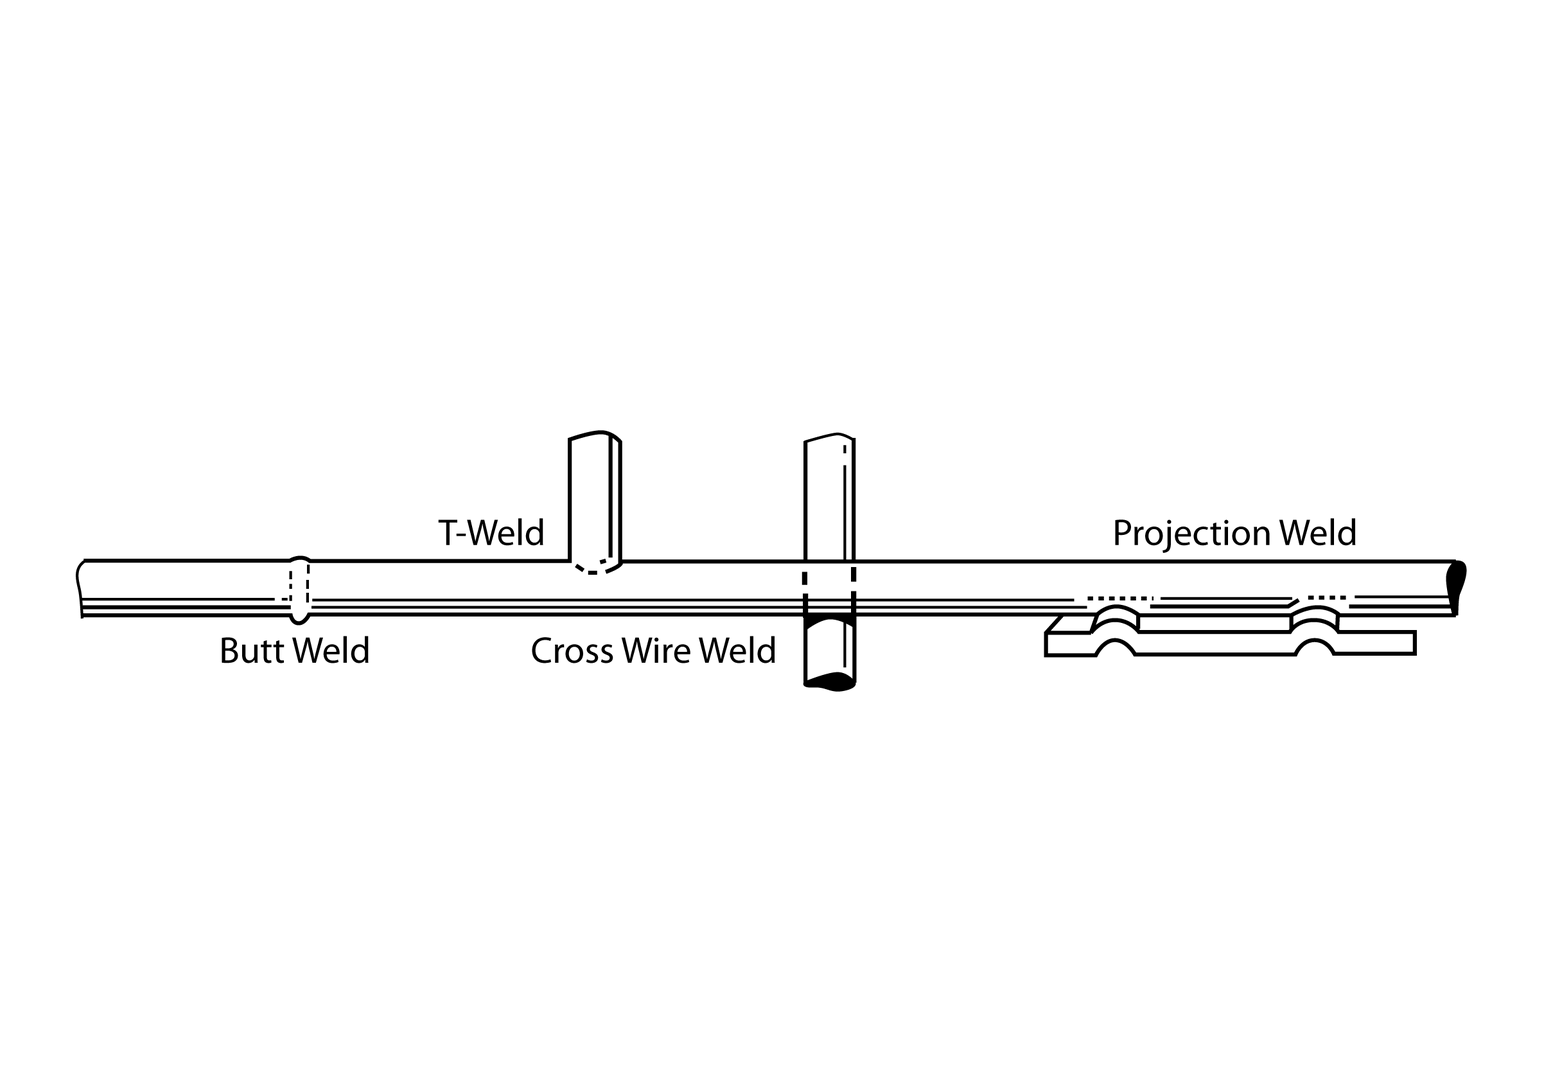 Custom Wire Connection Methods True Blue Diagram Of Welding Process Has The Capabilities To Connect In A Wide Variety Different Ways Resistance Is One Processes That We Use